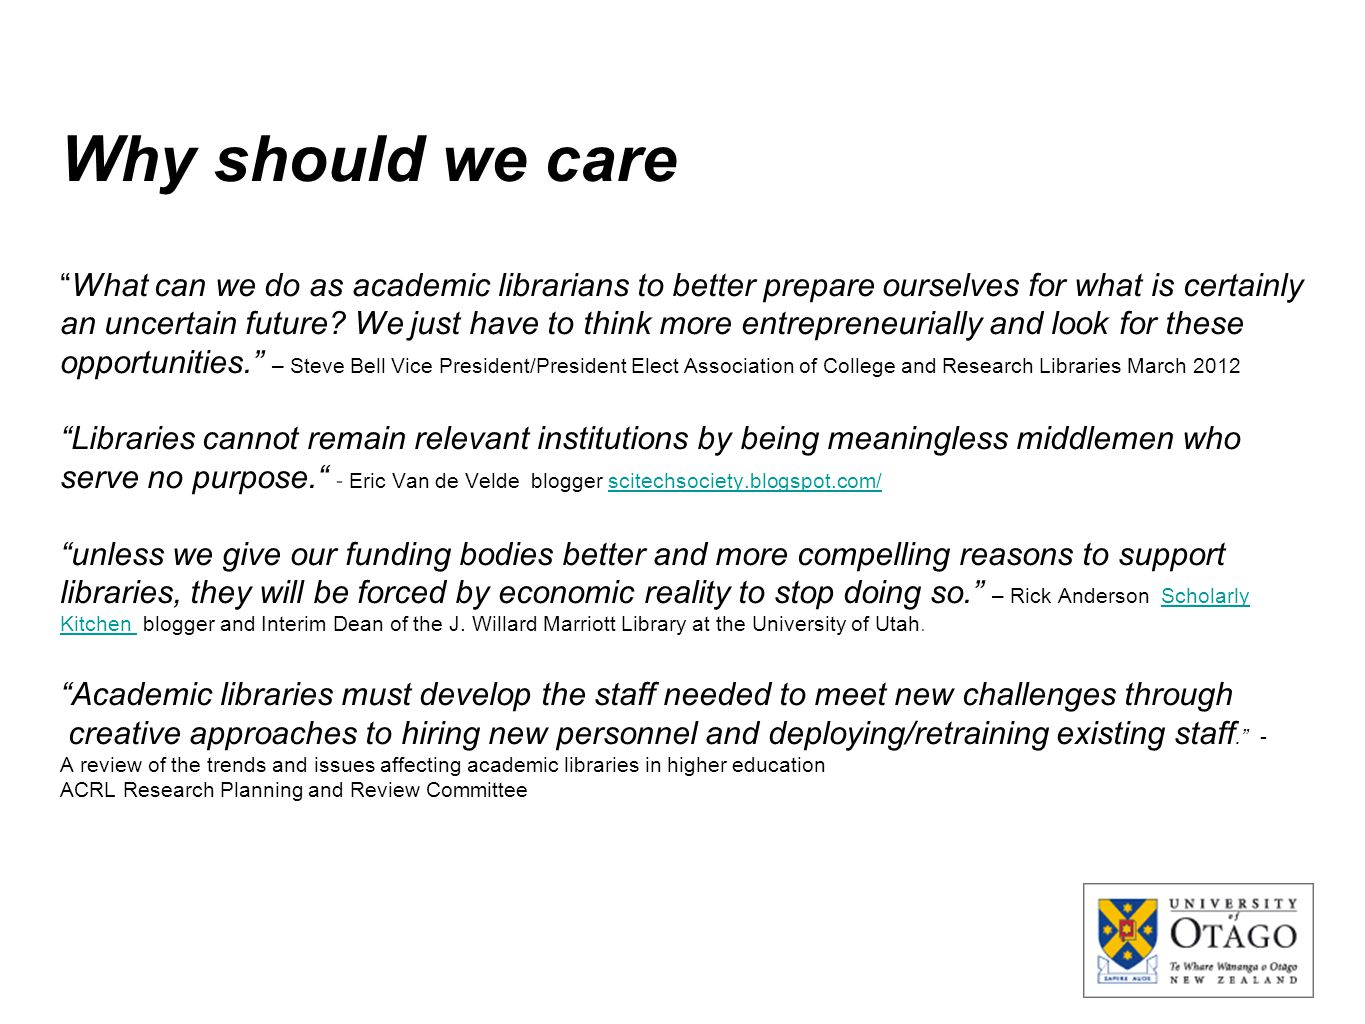 """What can we do as academic librarians to better prepare ourselves for what is certainly an uncertain future? We just have to think more entrepreneuri"